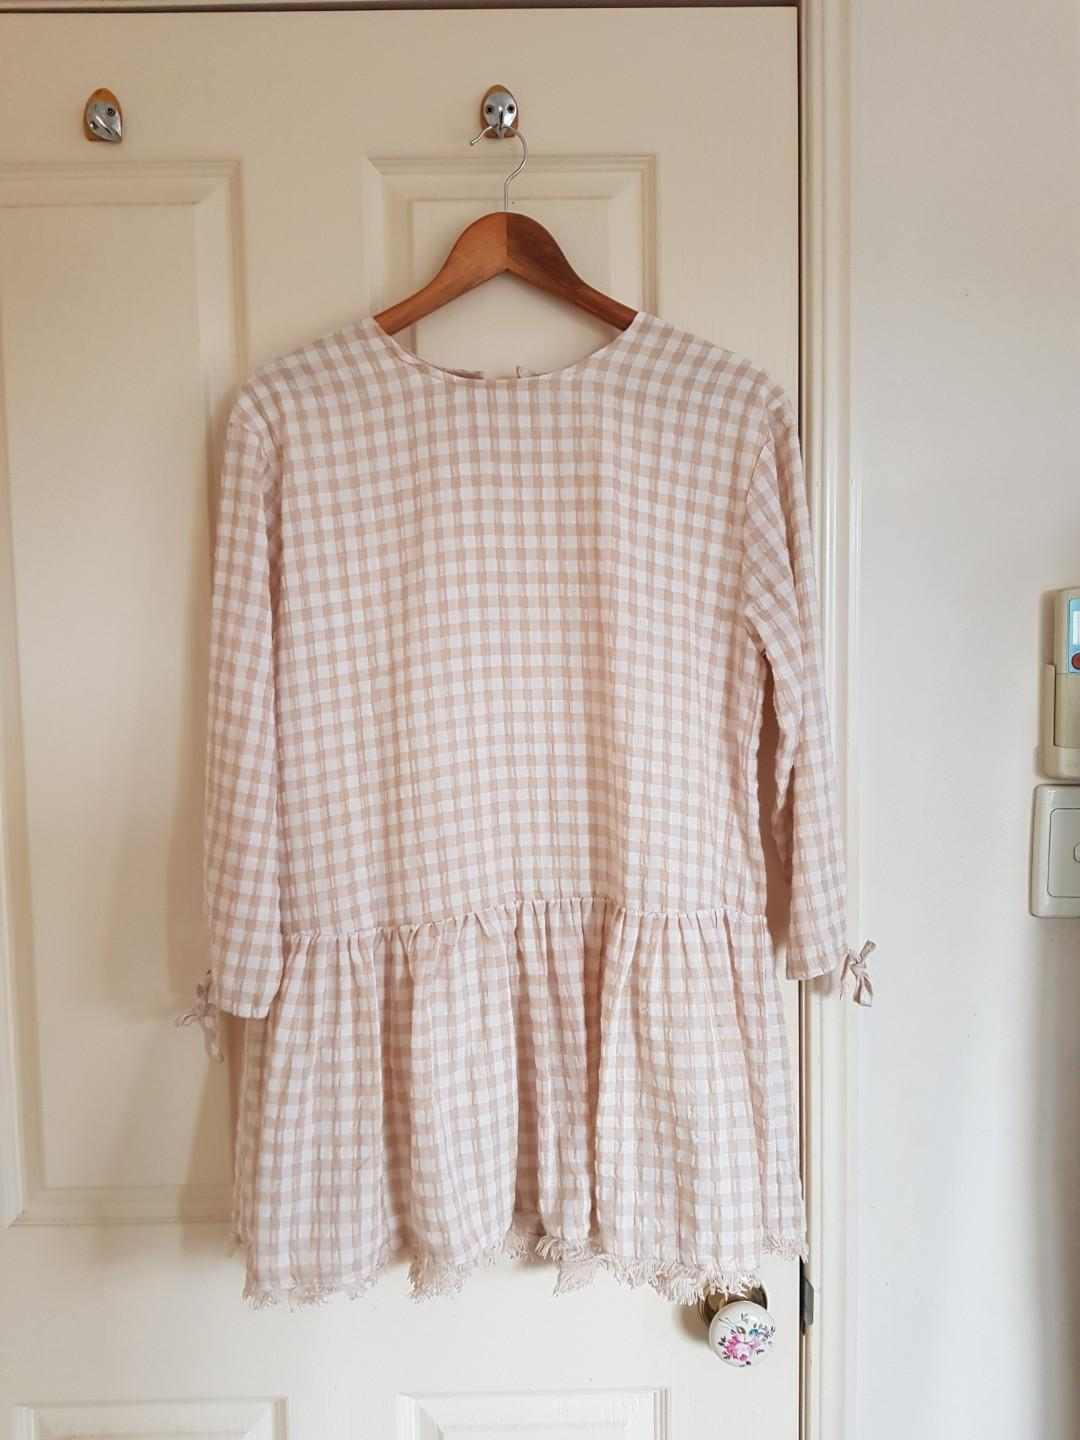 Light Gingham Shift Dress Size 6/XS